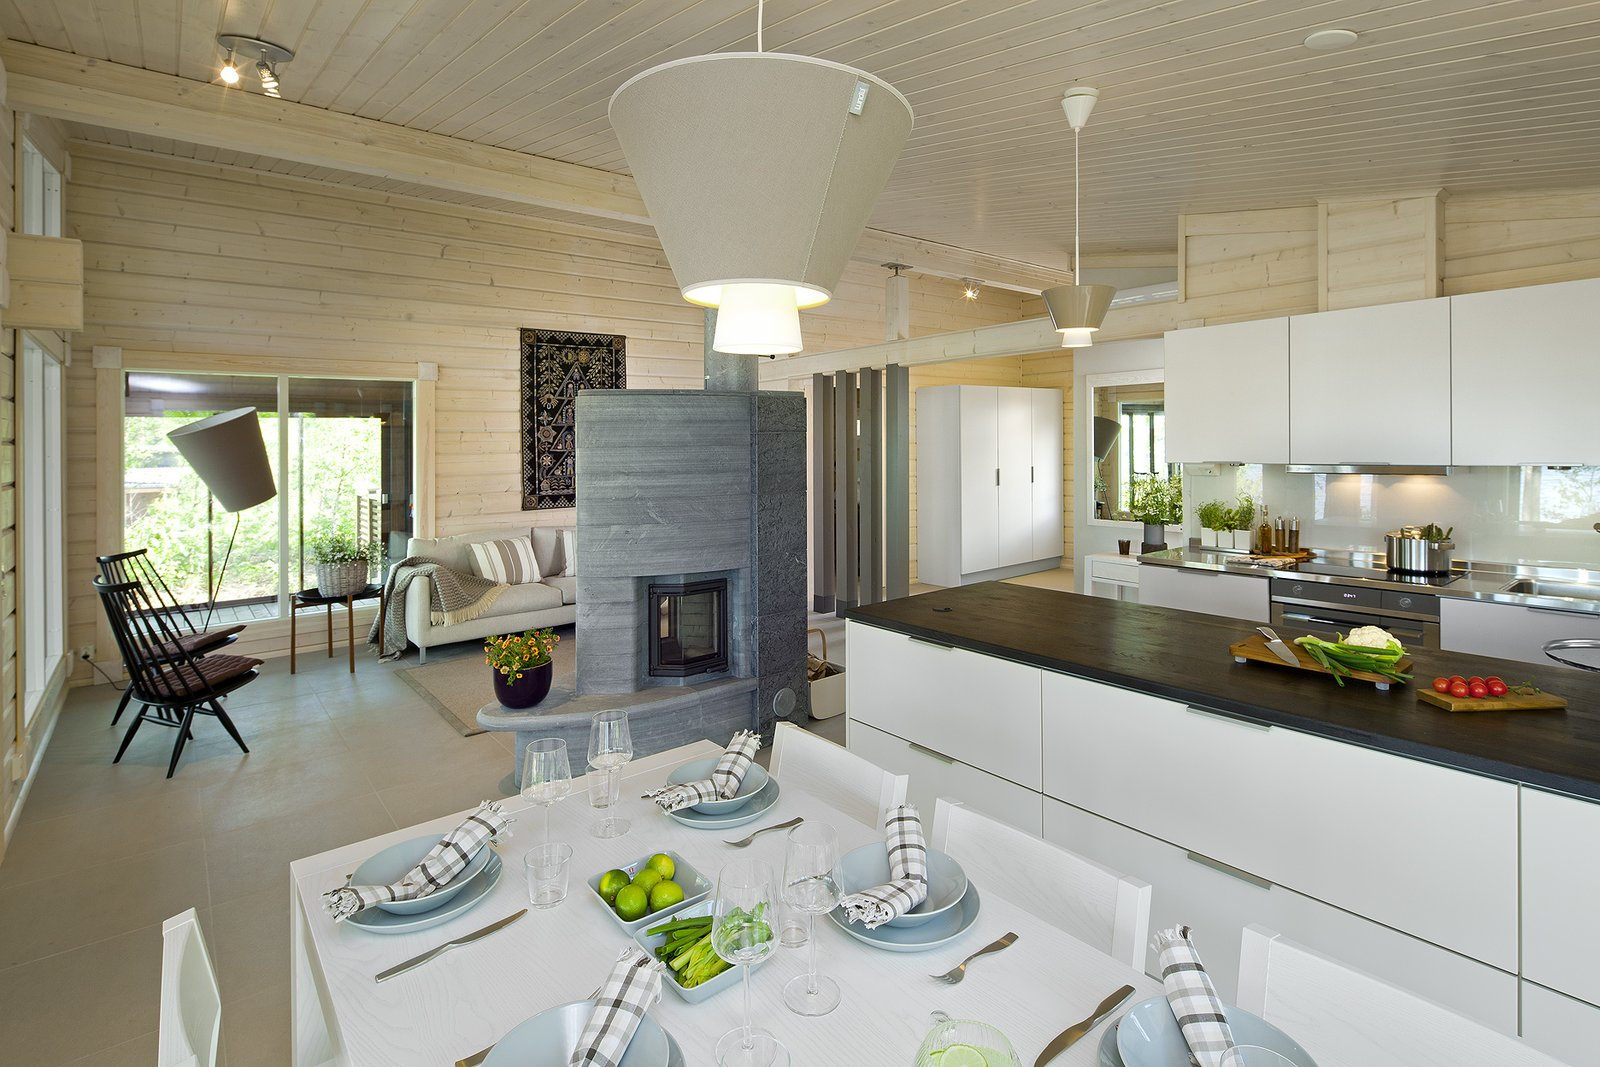 This model has vaulted ceilings and an glass-encased outdoor area with a large overhanging roof.